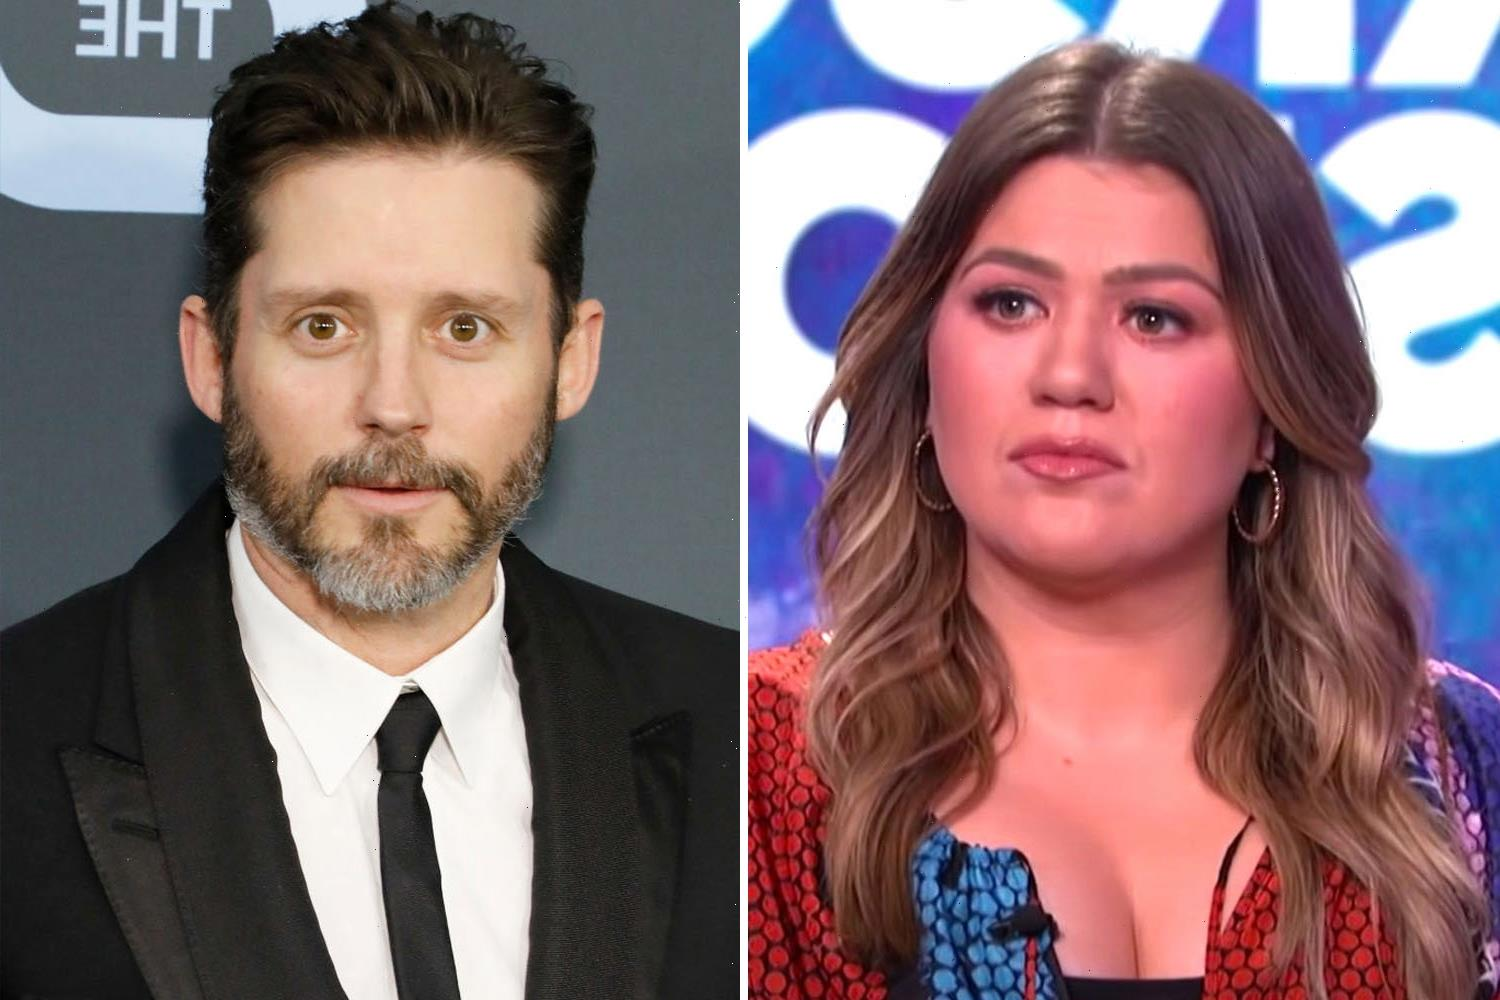 Kelly Clarkson's ex Brandon Blackstock was 'extremely jealous' of her success but now she can 'enjoy it without shame'